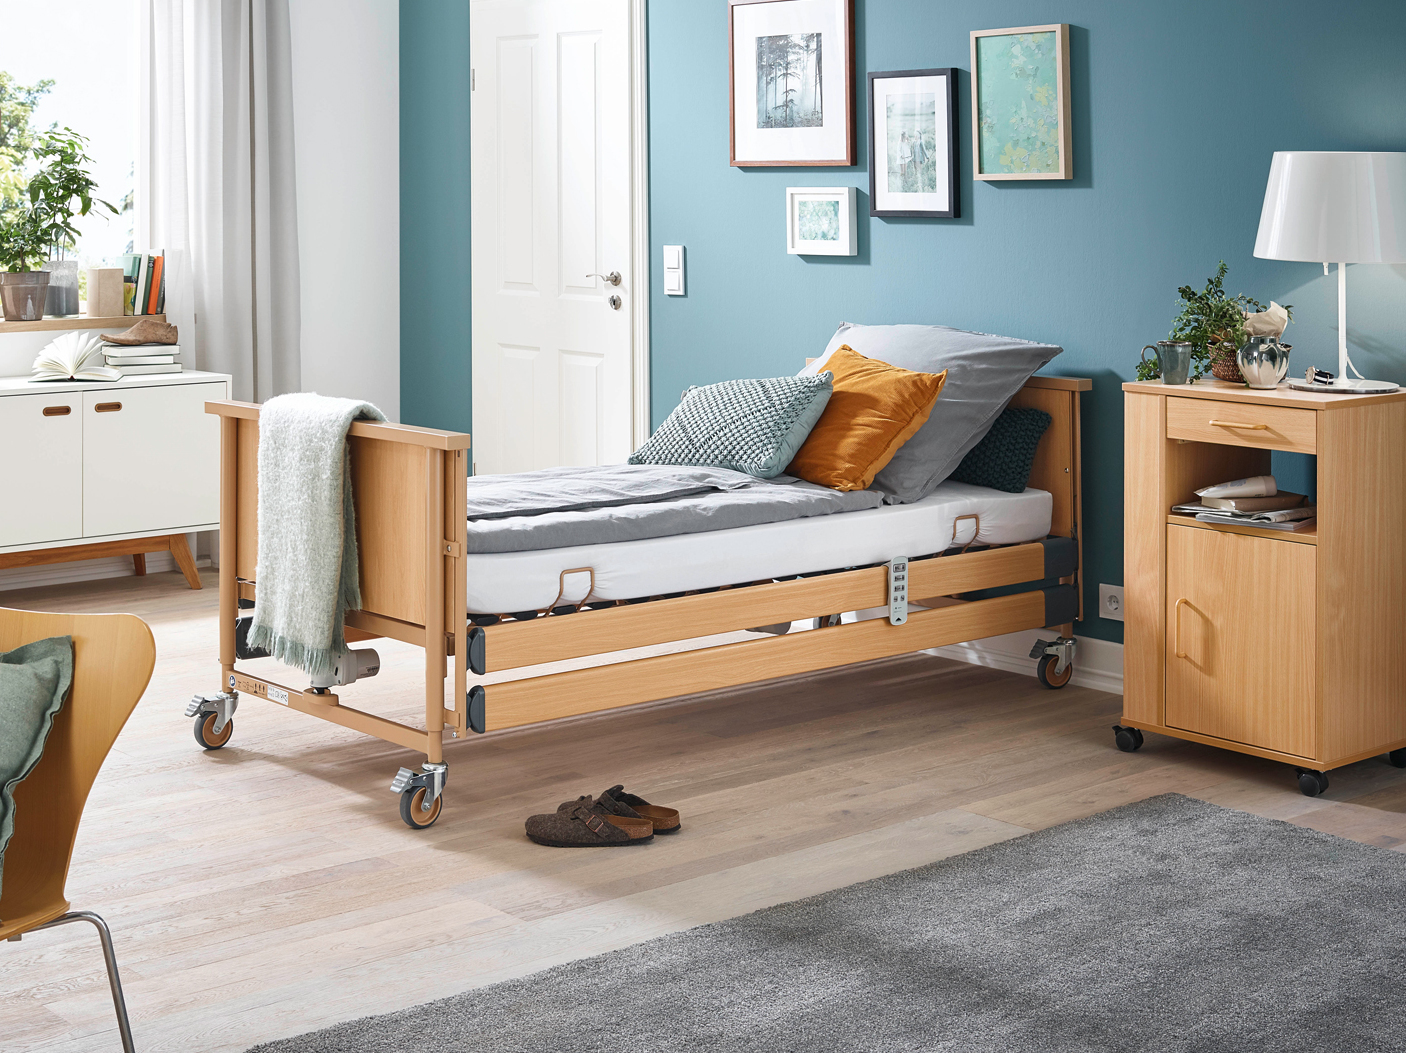 Fast, digital, comfortable – the Dali care bed range